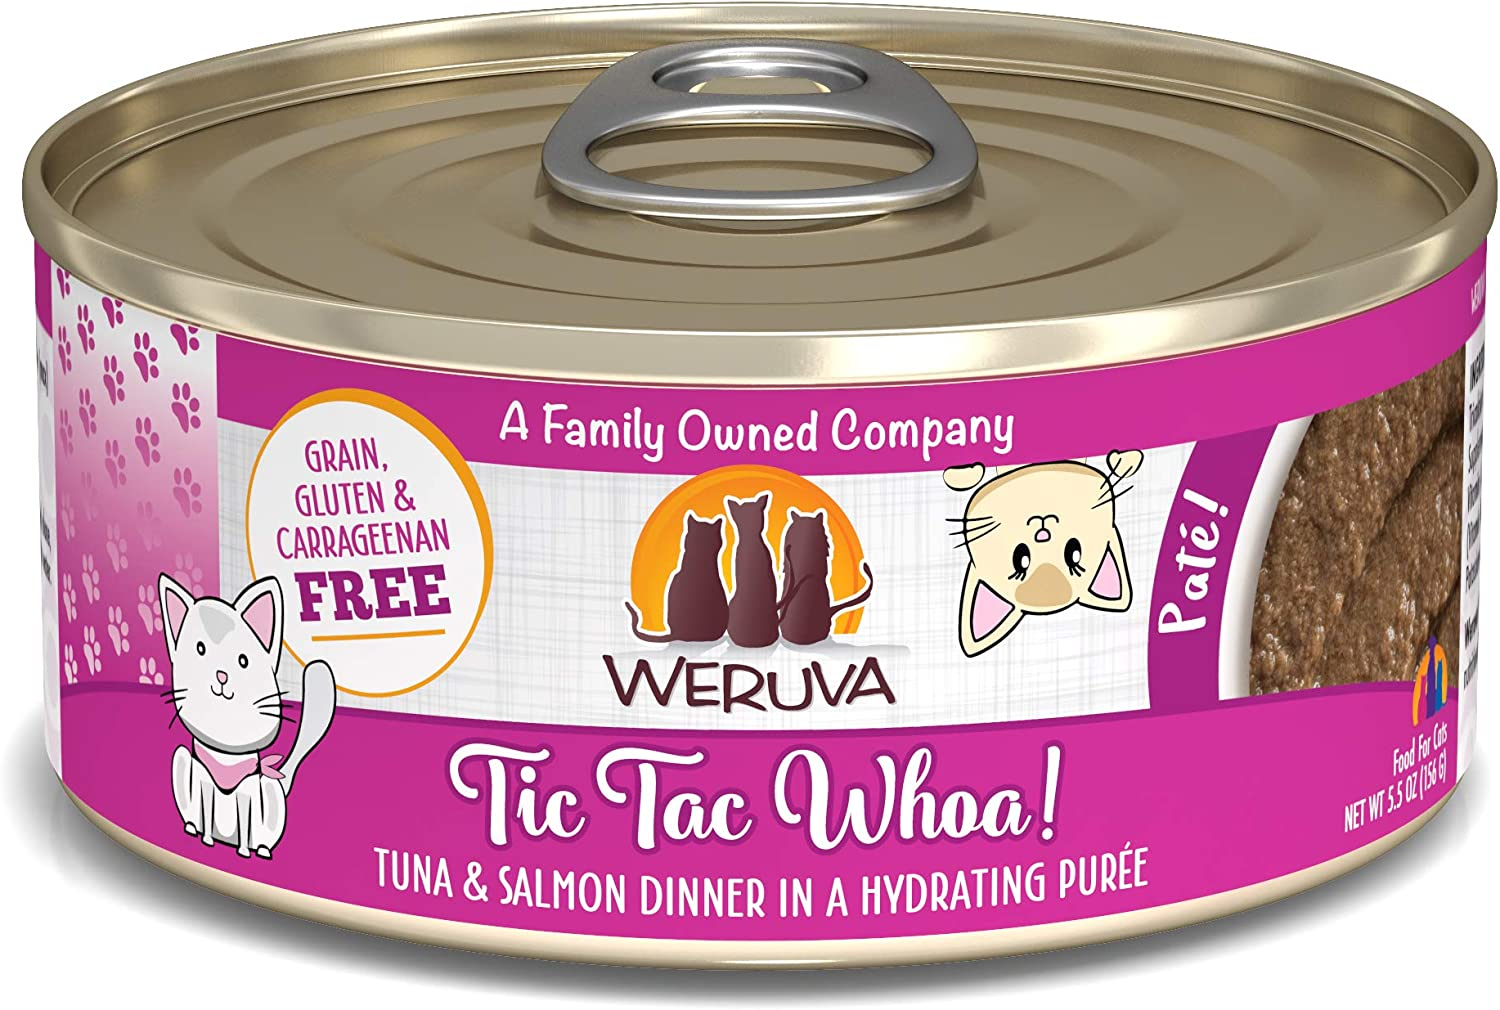 Weruva Classic Cat Patés! Grain-Free Natural Wet Pate Cat Food Cans